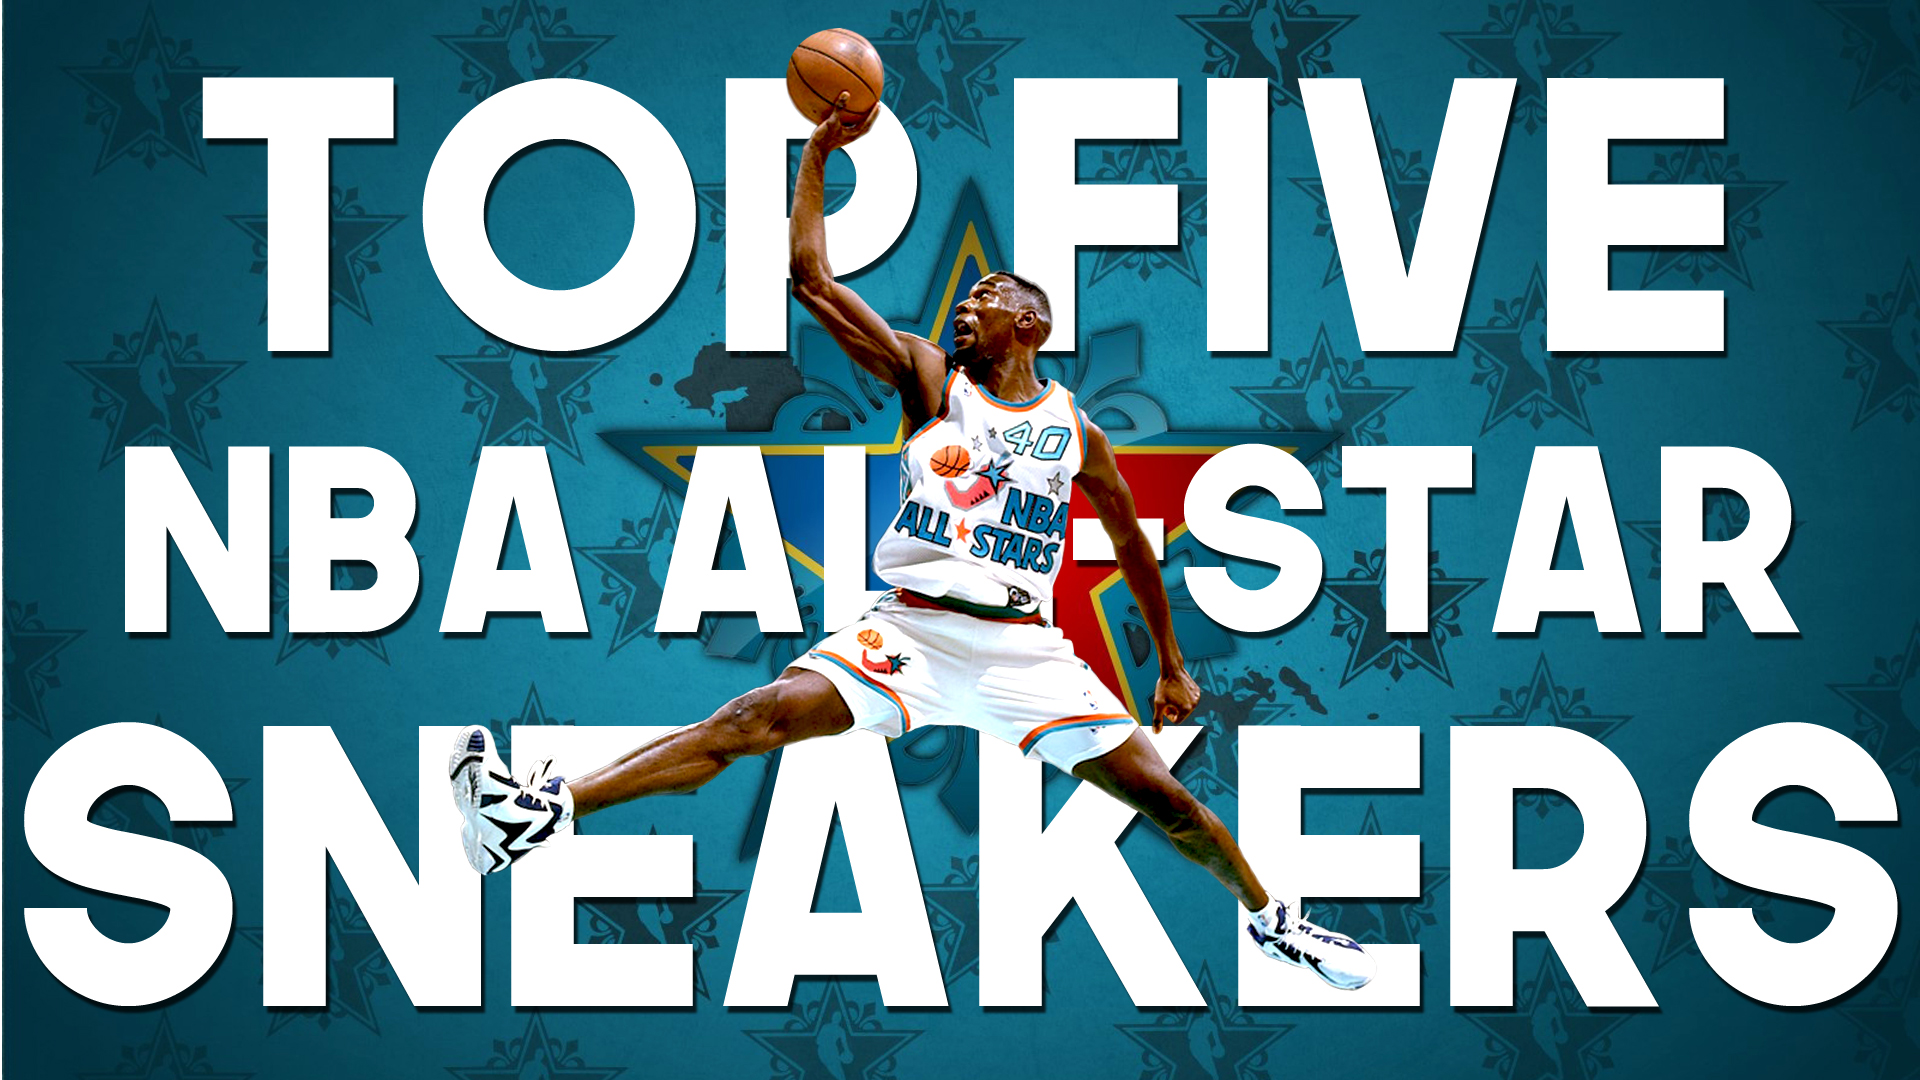 Top Five All-Star Thumbnail 2